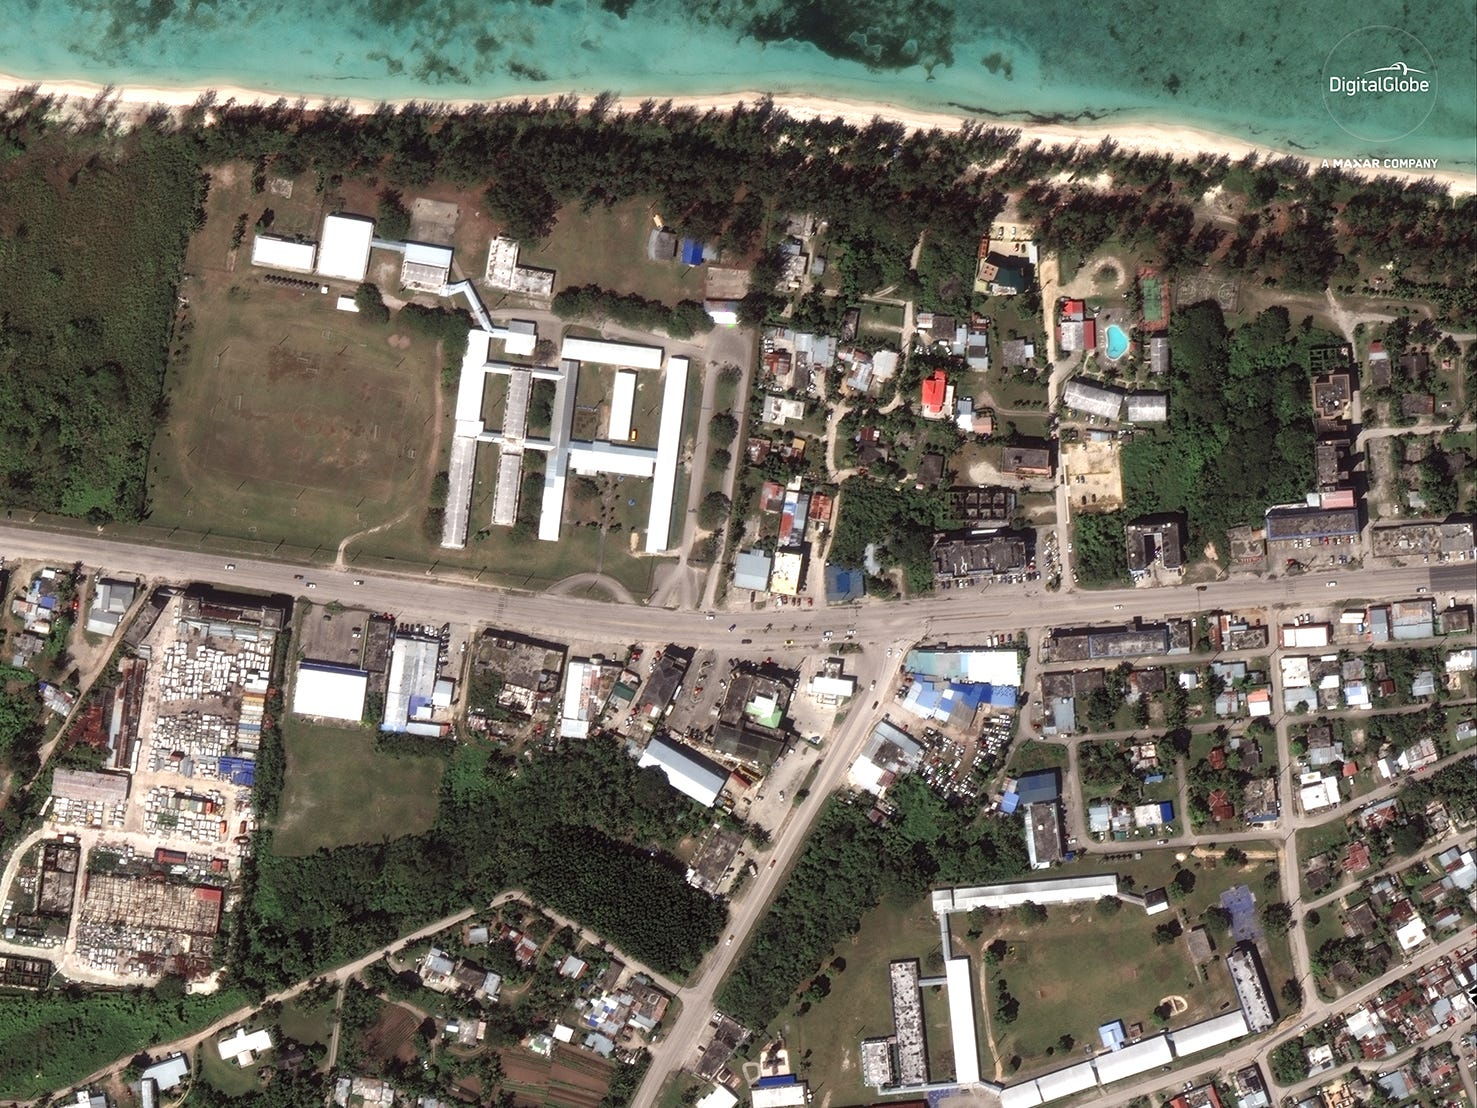 DigitalGlobe's WorldView-3 satellite made this photo of the northern Mariana Islands of Saipan and Tinian. The next photo in the gallery shows the same location after the aftermath of the Category 5 Typhoon Yutu.